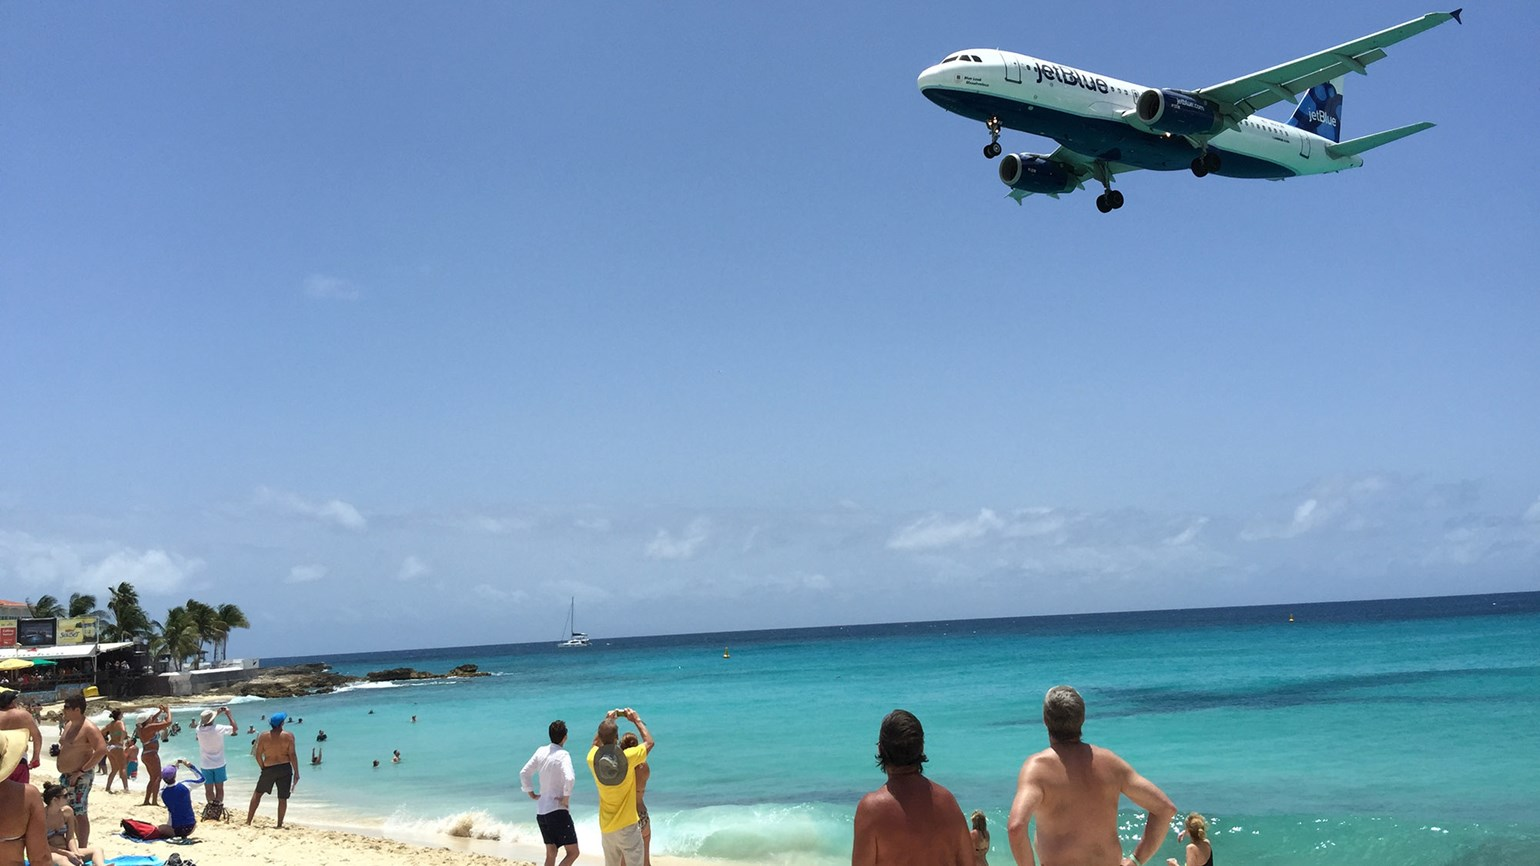 Jet blast kills tourist in St. Maarten